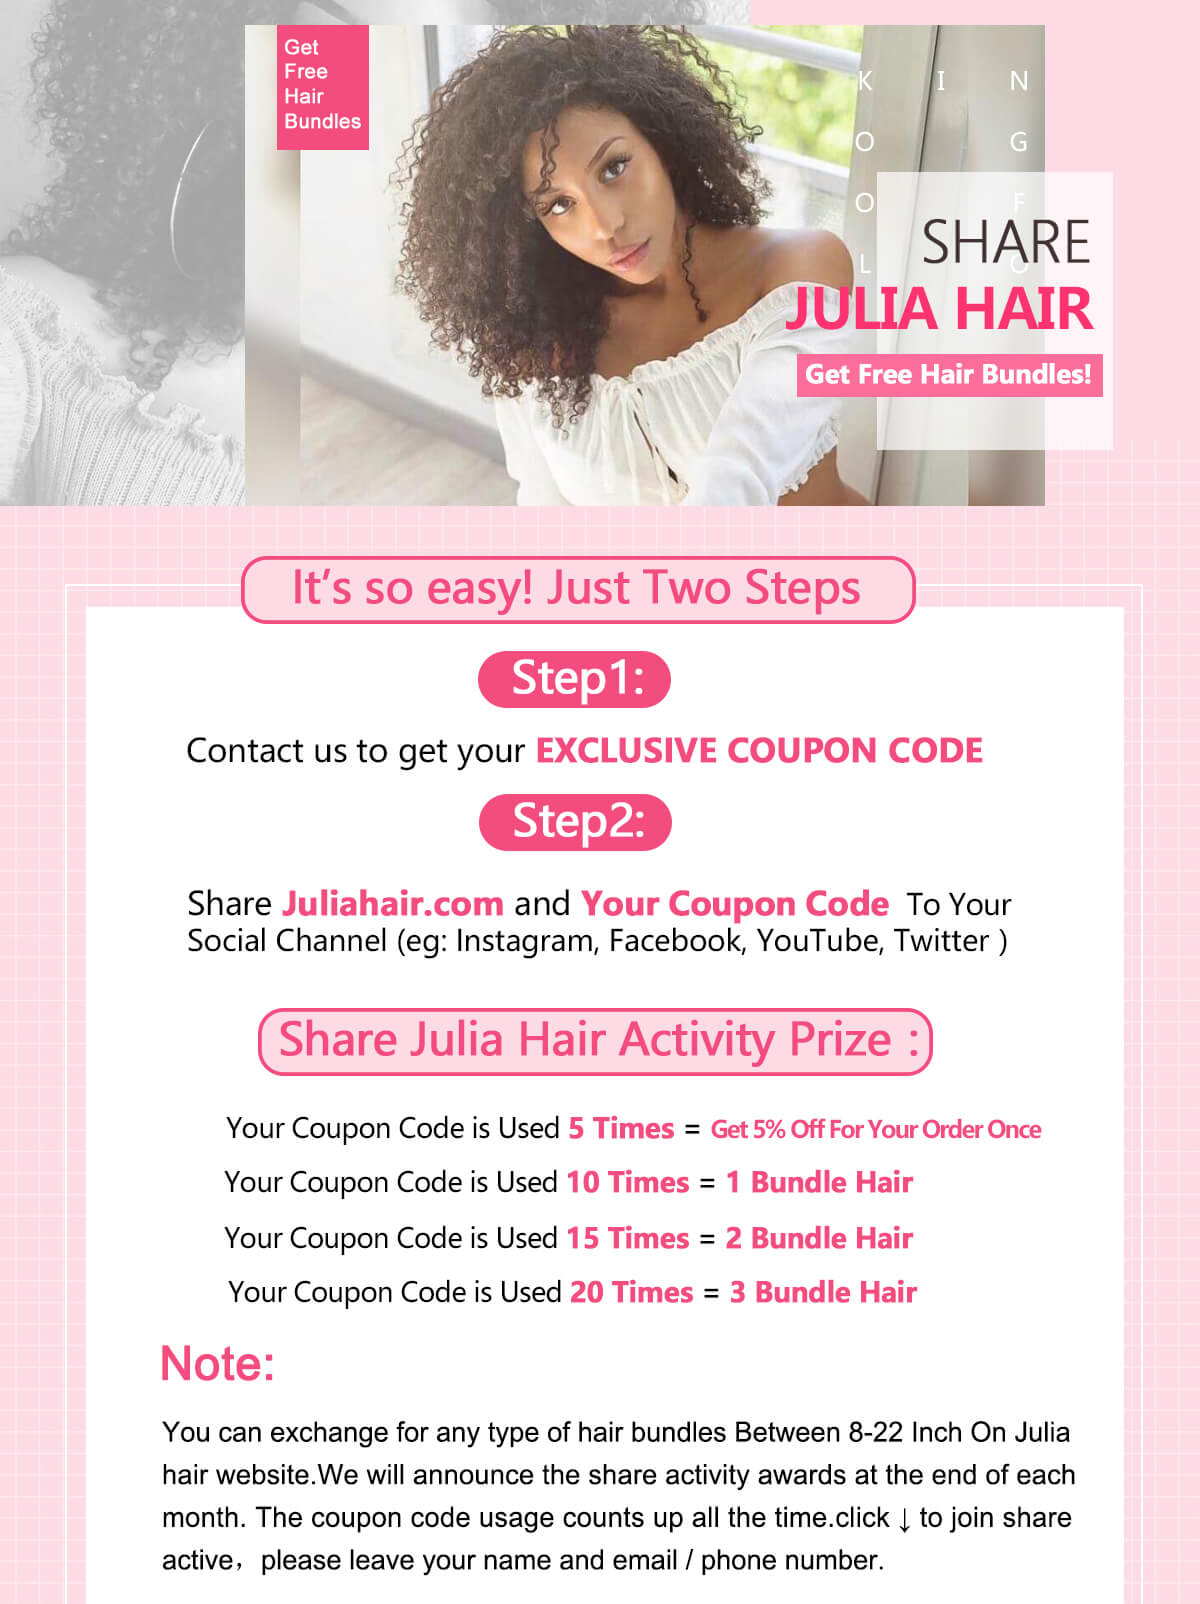 Get Free Hair Bundles: The Ultimate Guide (Step by Step